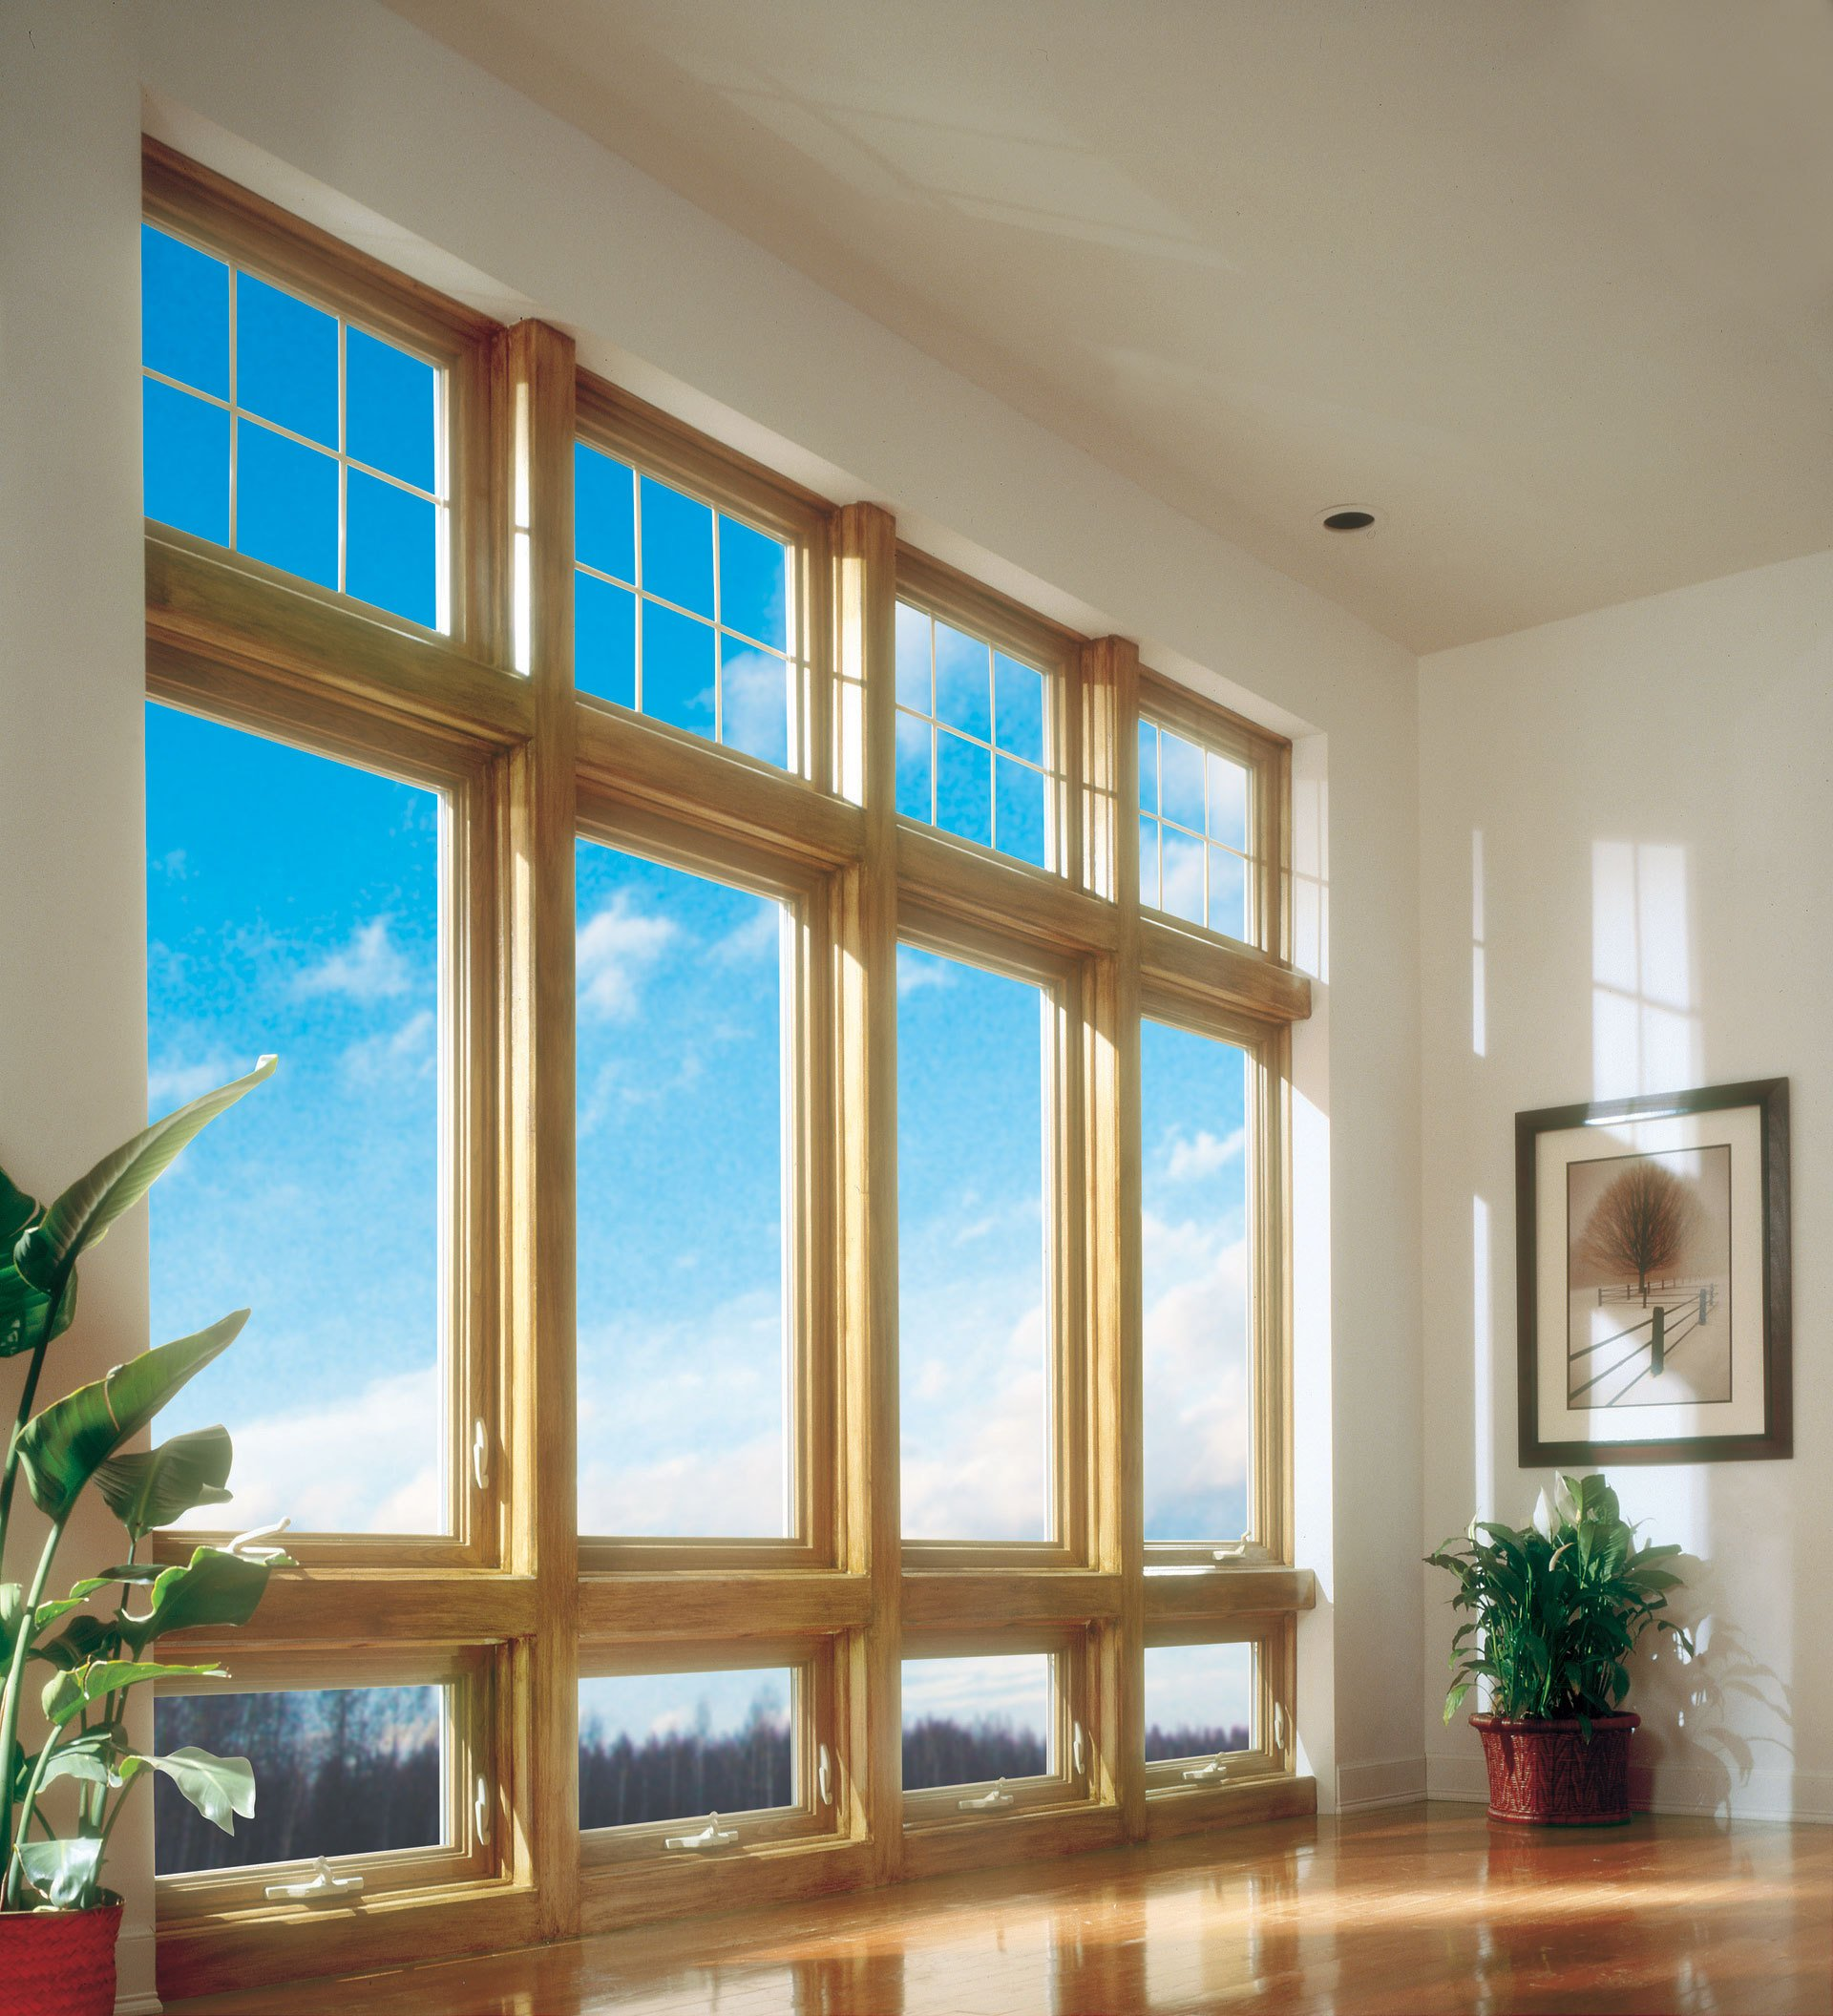 Vinyl replacement windows in cincinnati oh for Replacement window design ideas